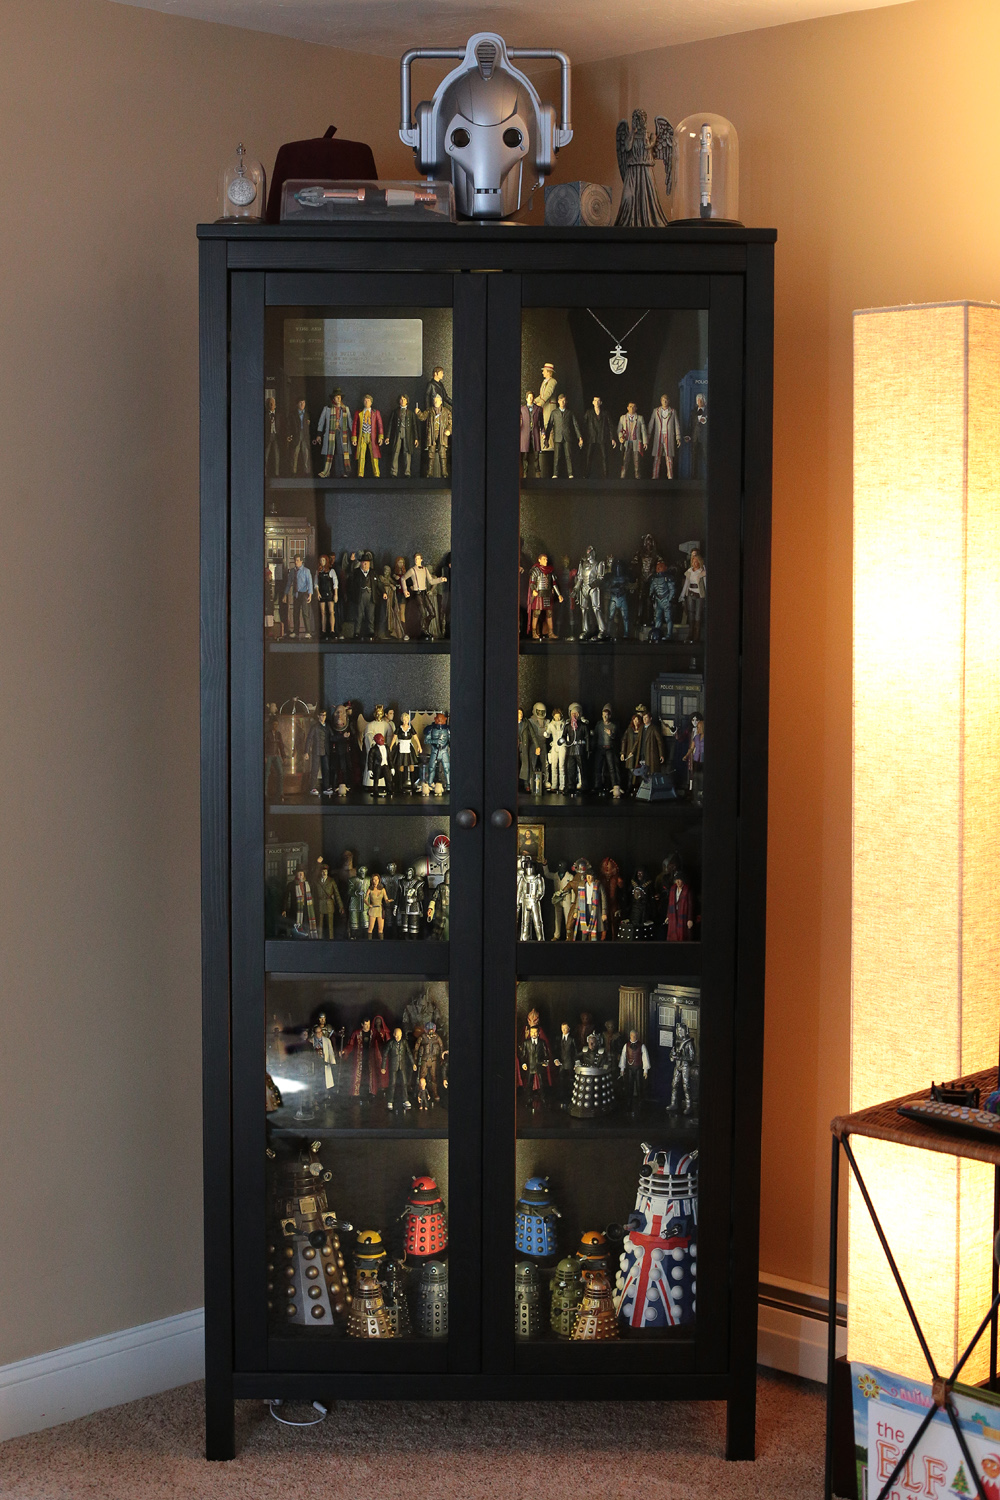 Show off your figure collections!!! - Page 18 Whocabinetclosed1